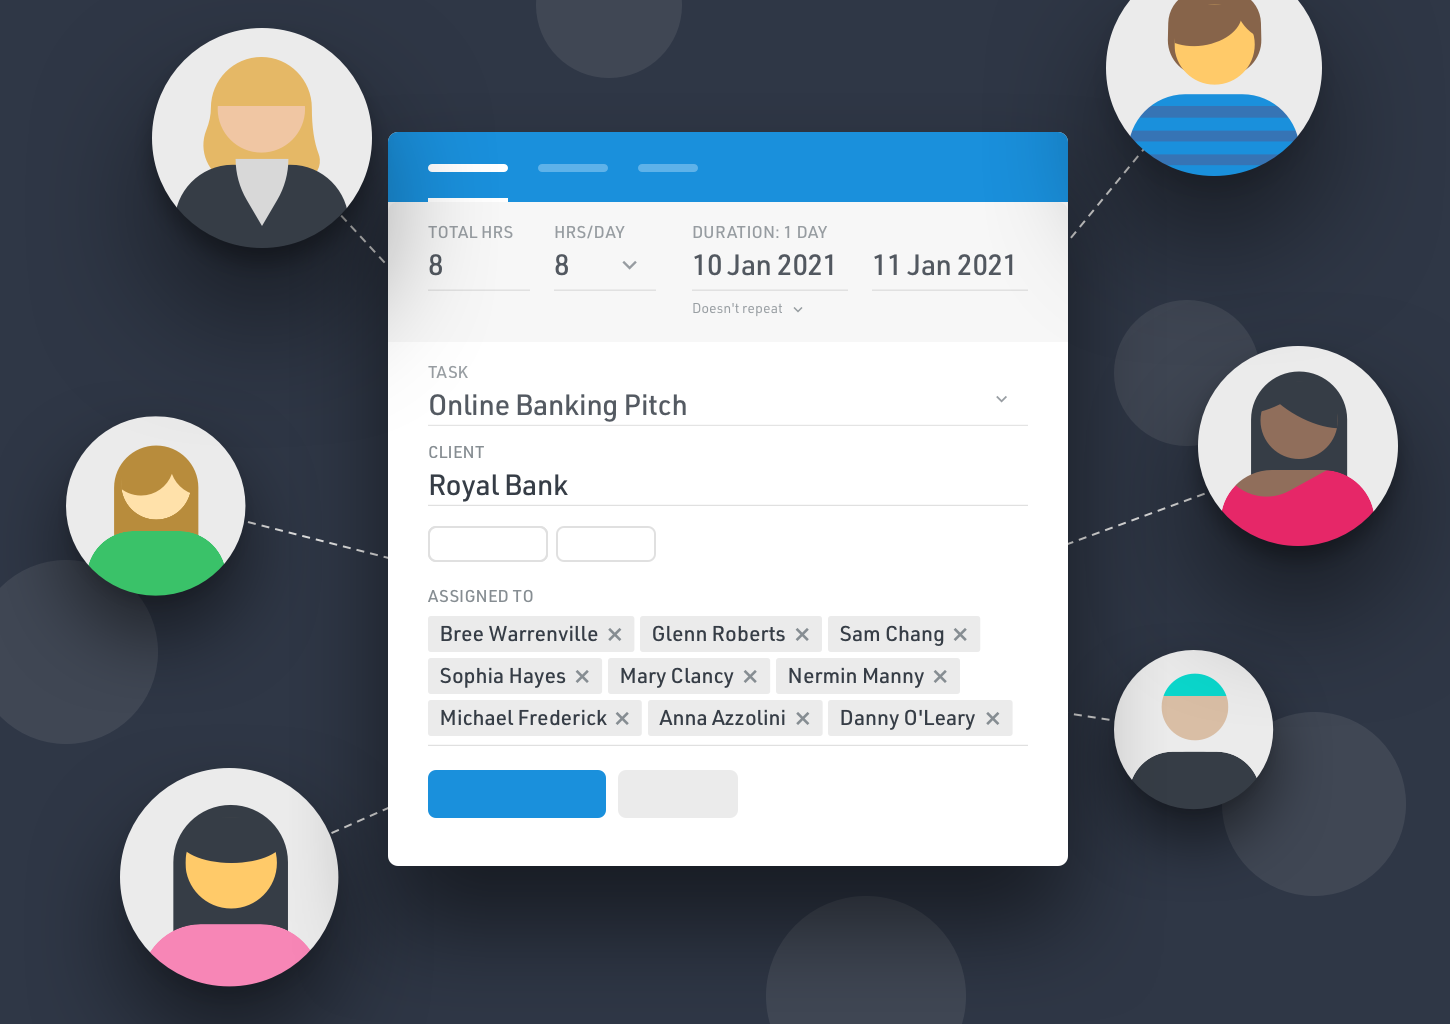 Introducing Multi-Assign & Bulk Edits for Smarter Scheduling